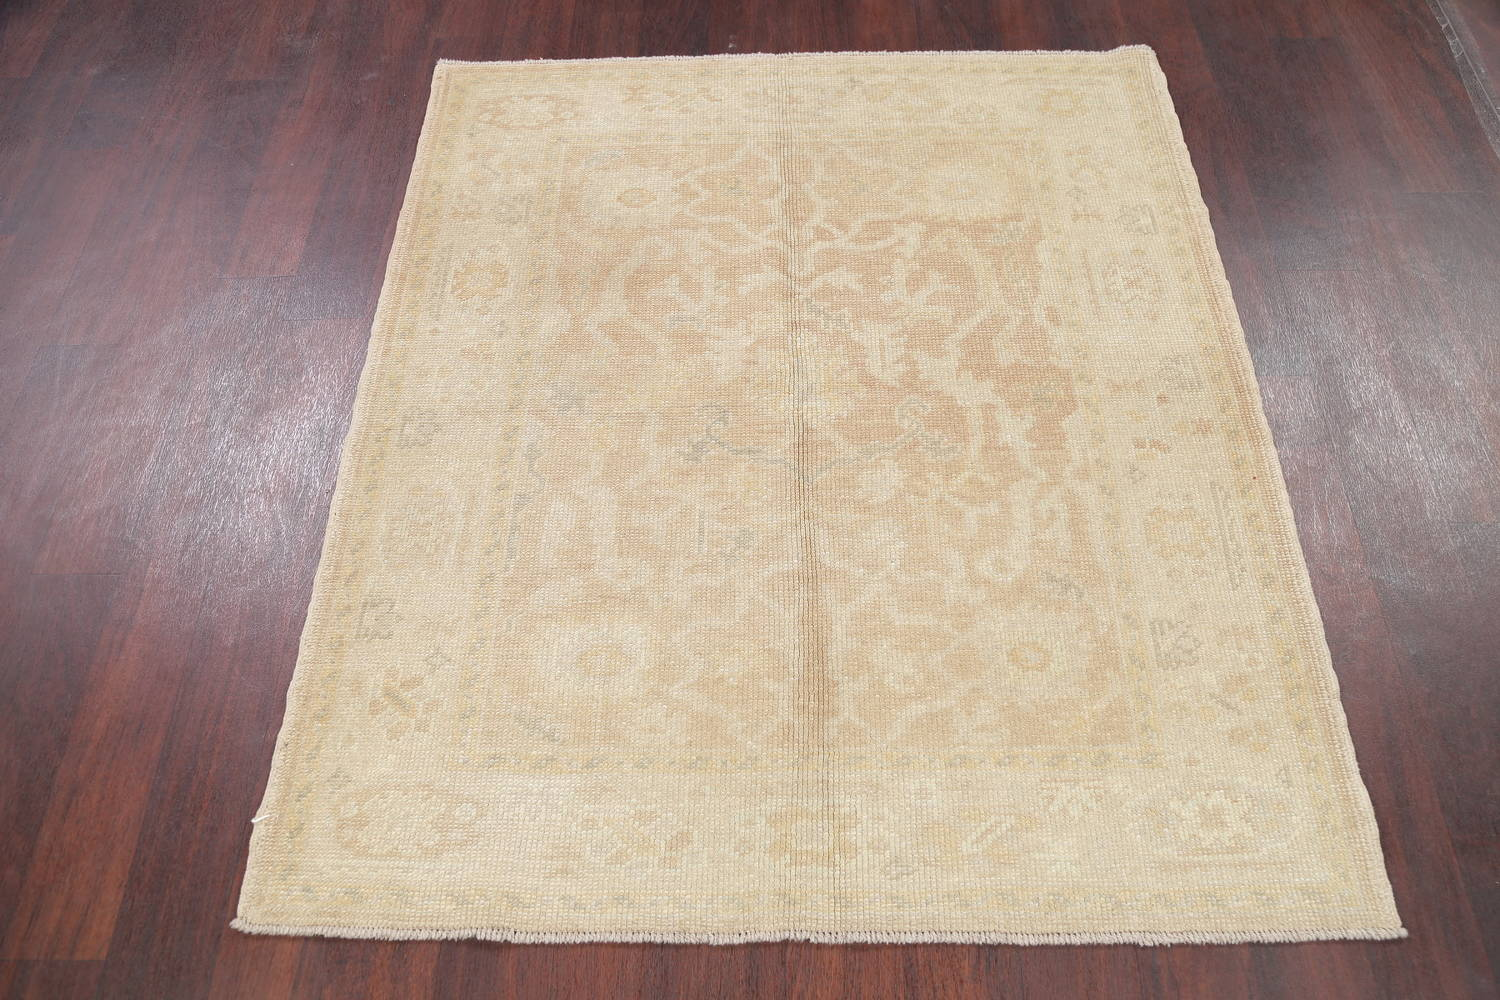 Vegetable Dye Muted Gold Oushak Turkish Hand-Knotted Area Rug 4x5 image 12